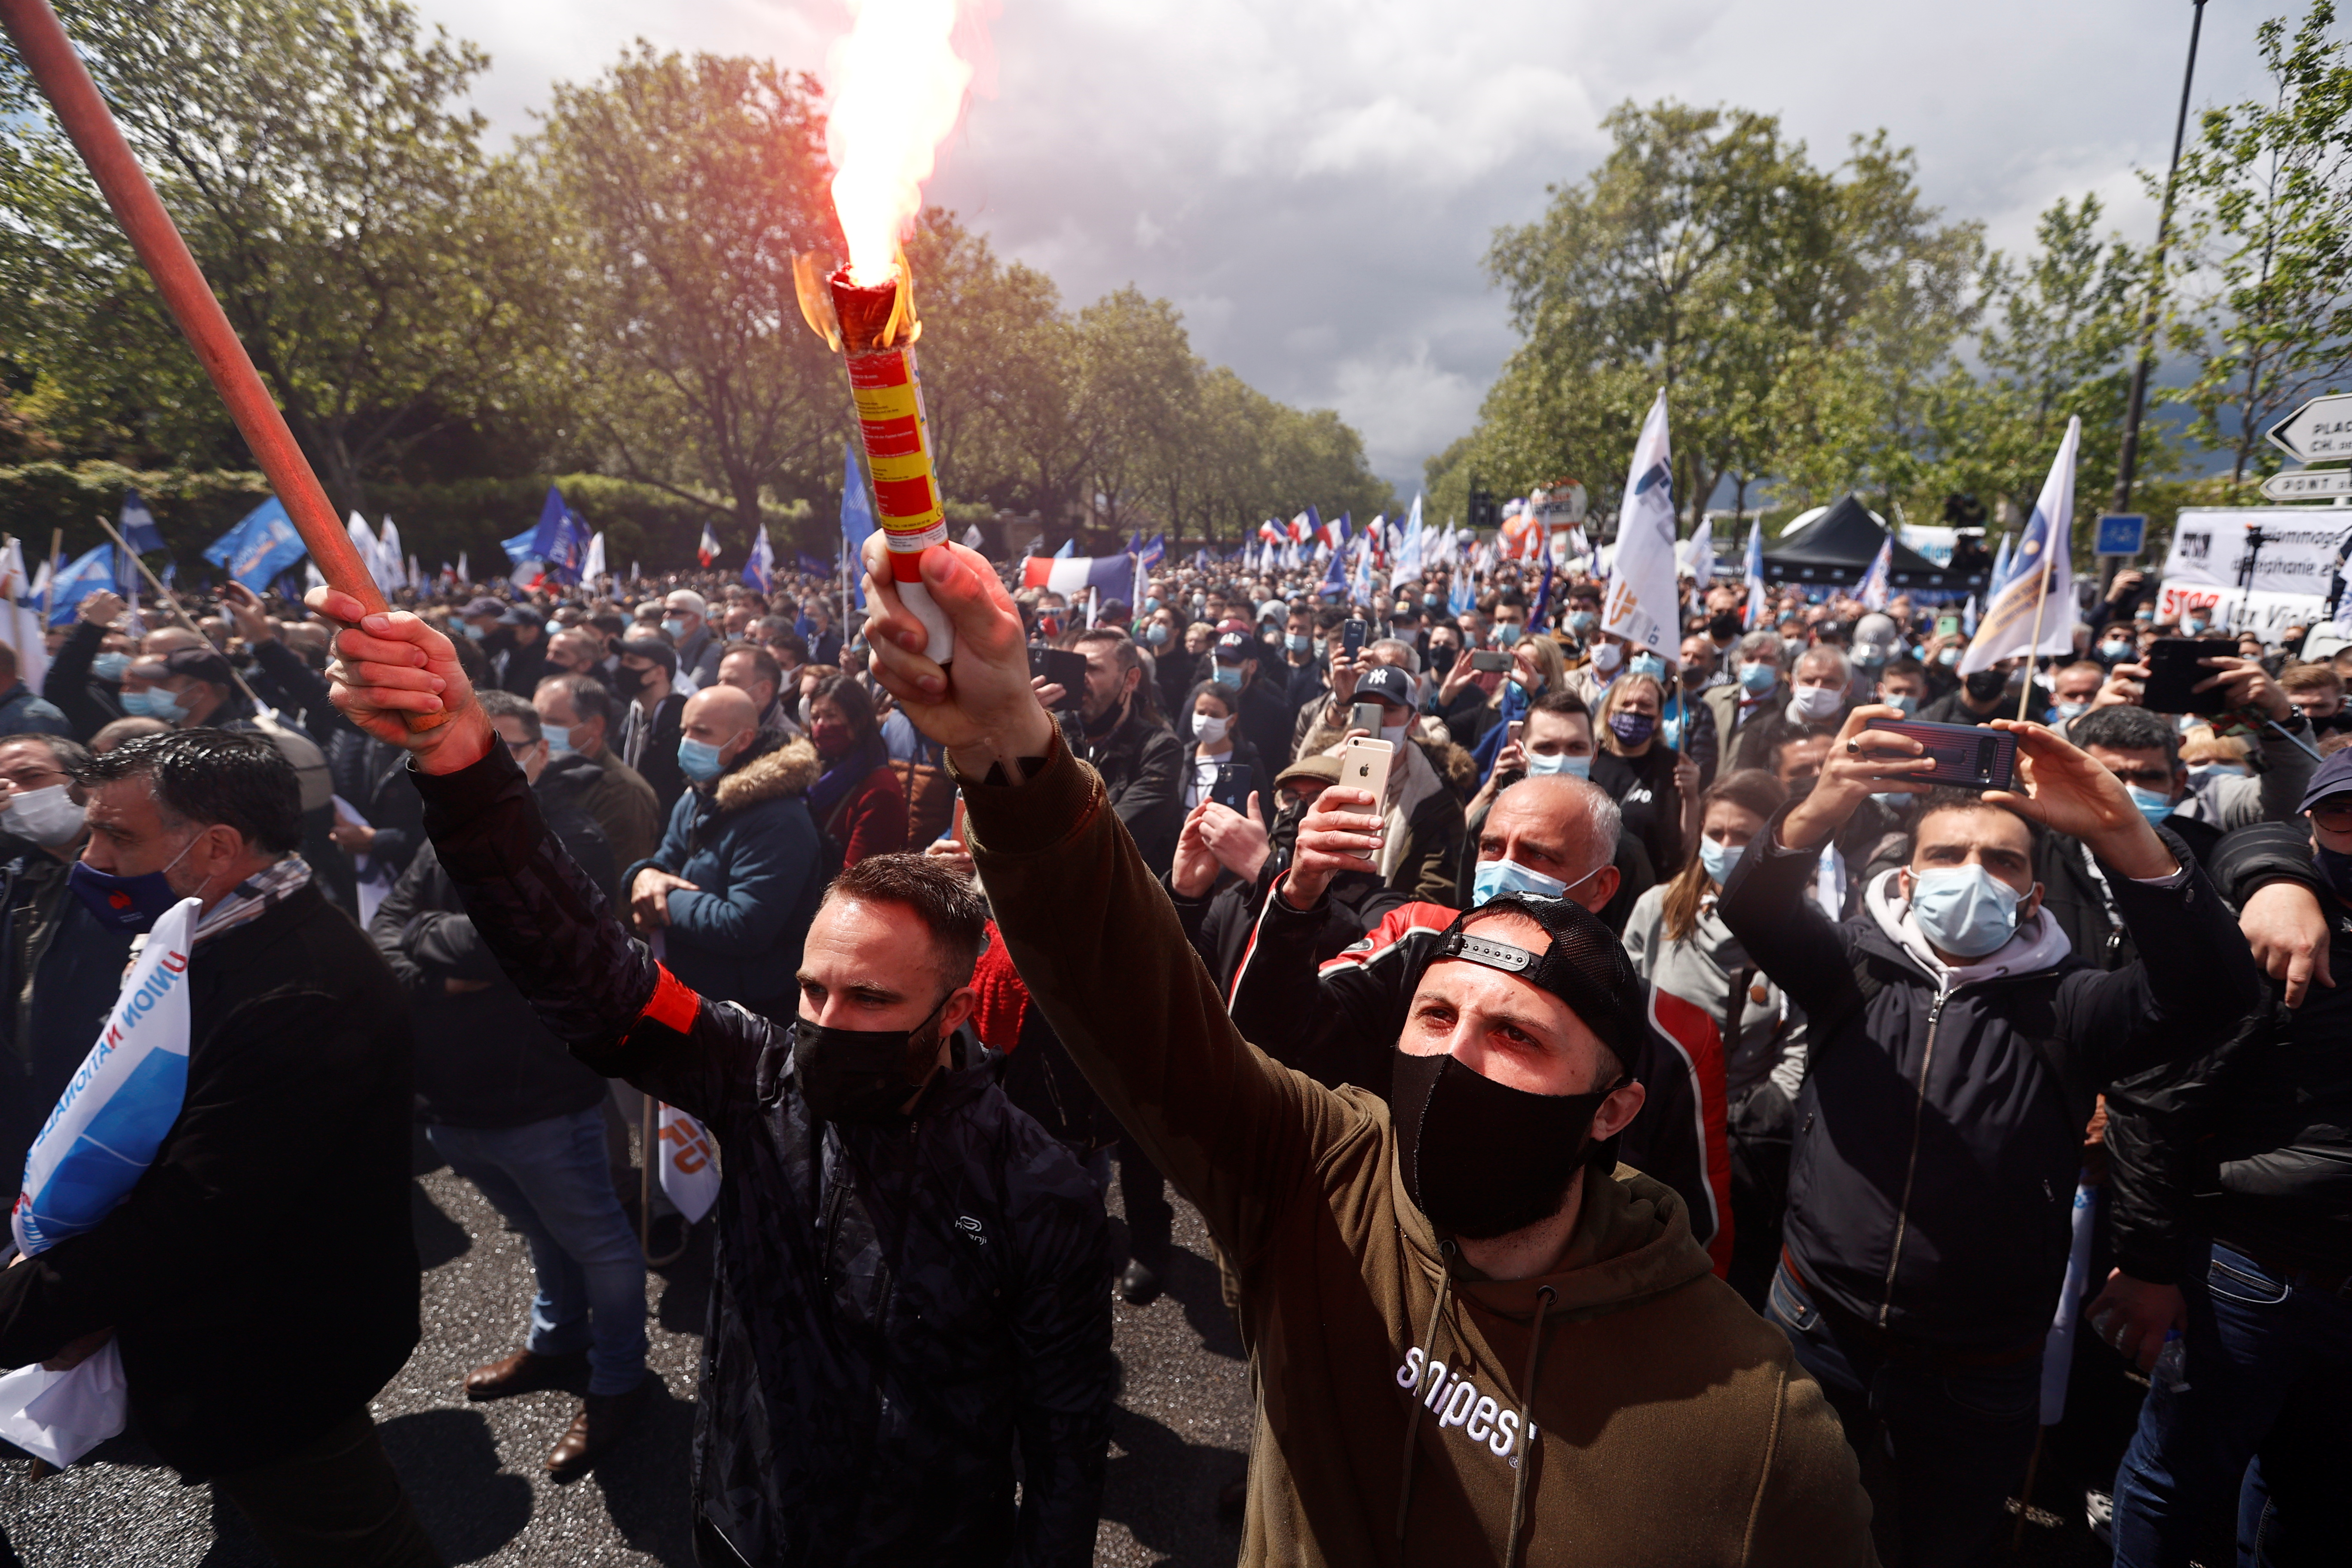 French police officers from all over France gather in front of the National Assembly in Paris to protest against violence against themselves and require a greater severity in the penal response to their aggressors, France, May 19, 2021. REUTERS/Christian Hartmann